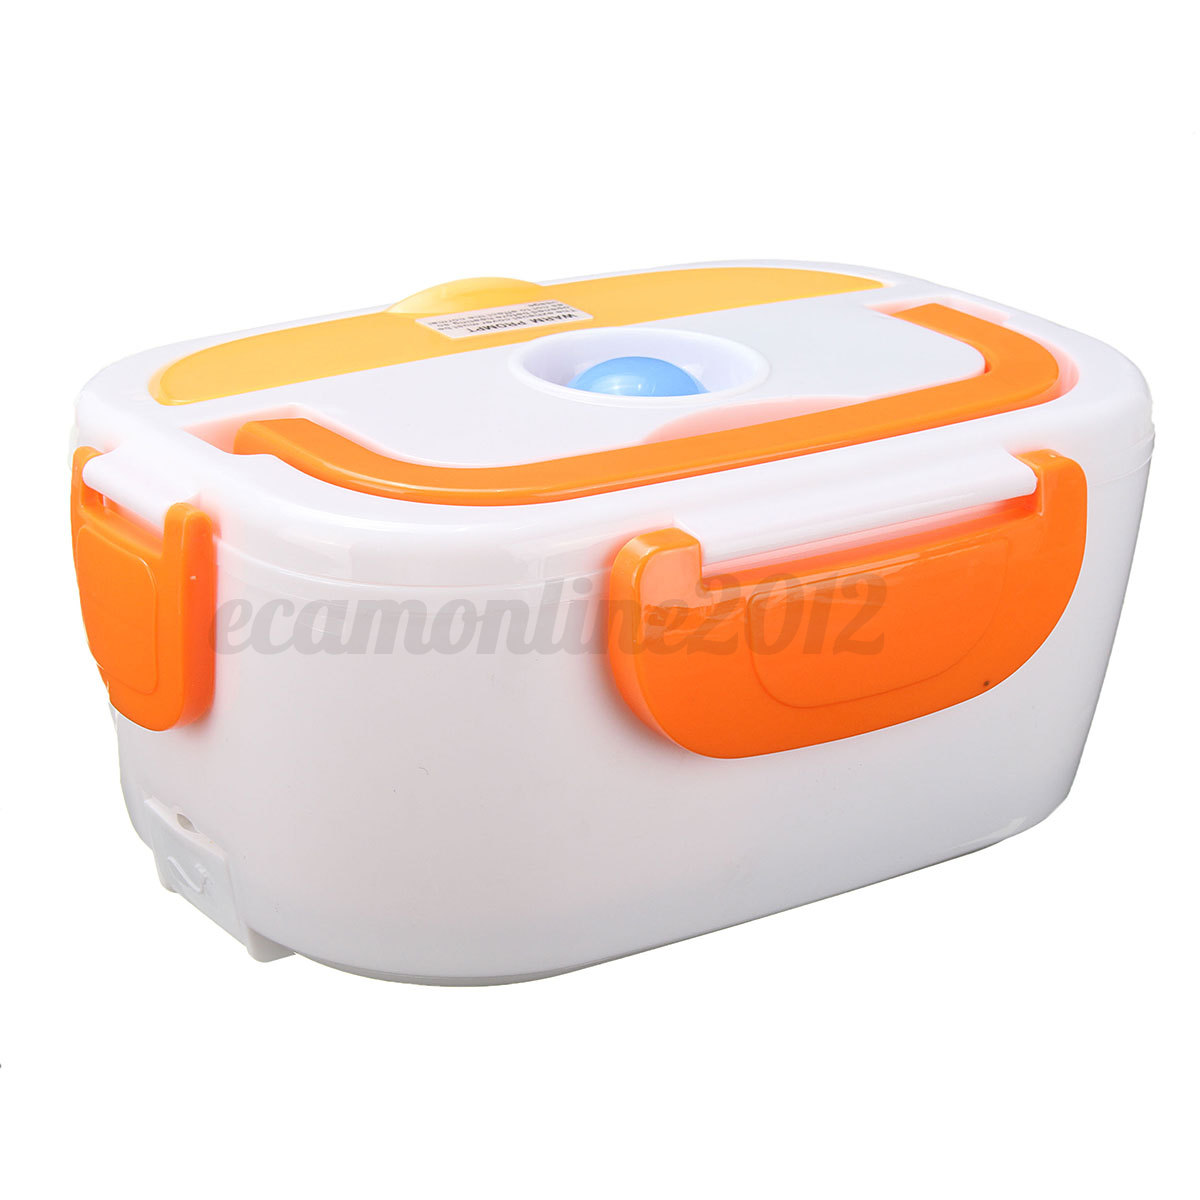 car plug charger heating lunch box 12v electric heated lunch bento food warmer ebay. Black Bedroom Furniture Sets. Home Design Ideas